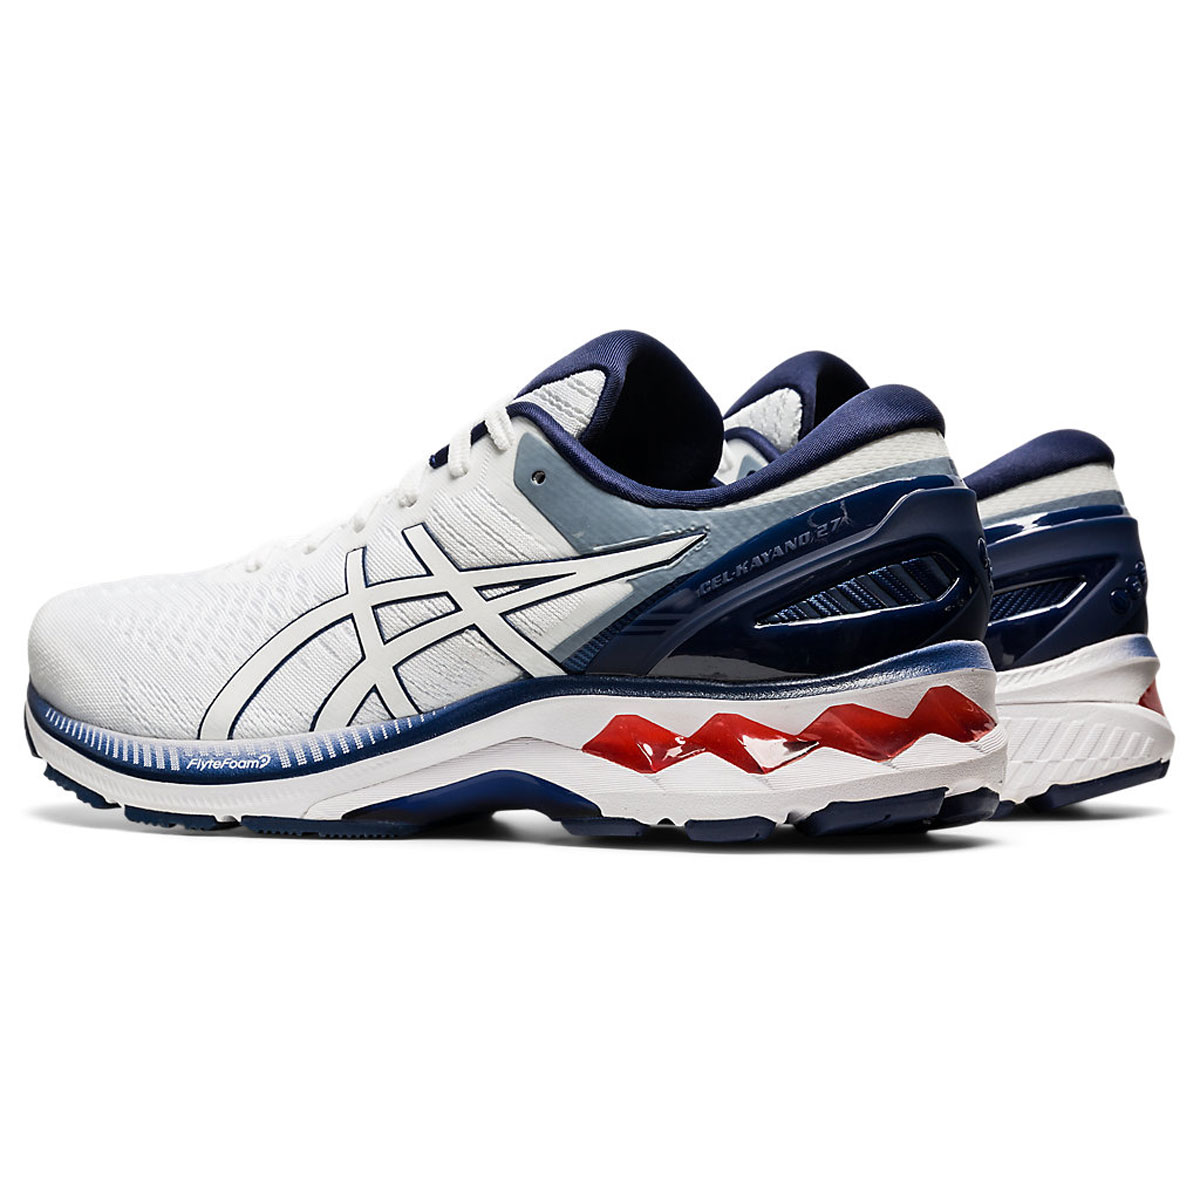 Men's Asics GEL-Kayano 27 Running Shoe - Color: White/Peacoat (Regular Width) - Size: 6, White/Peacoat, large, image 4